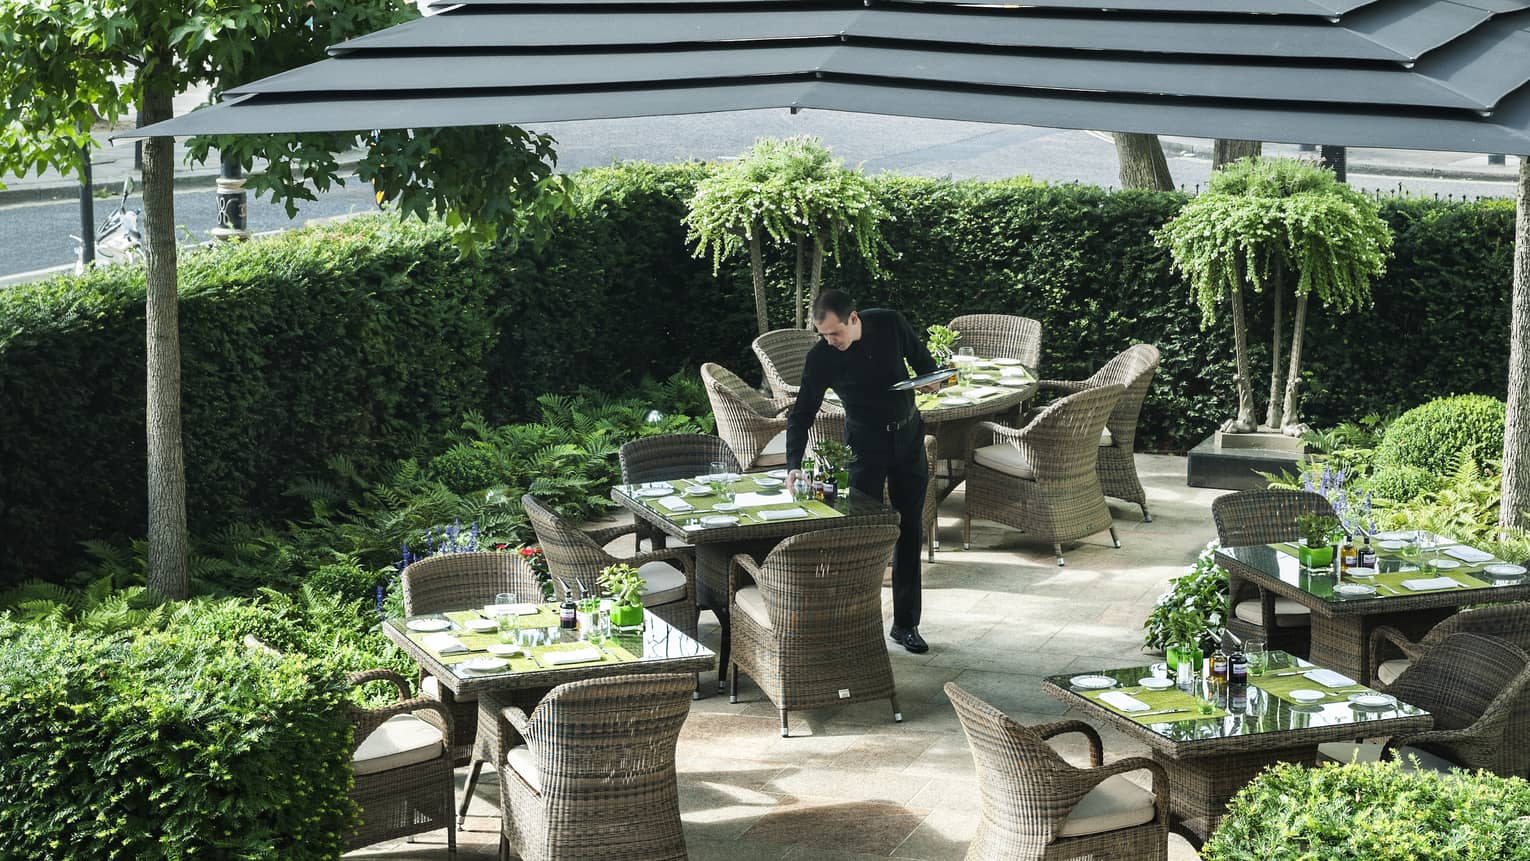 Hotel staff sets patio dining table under large umbrella